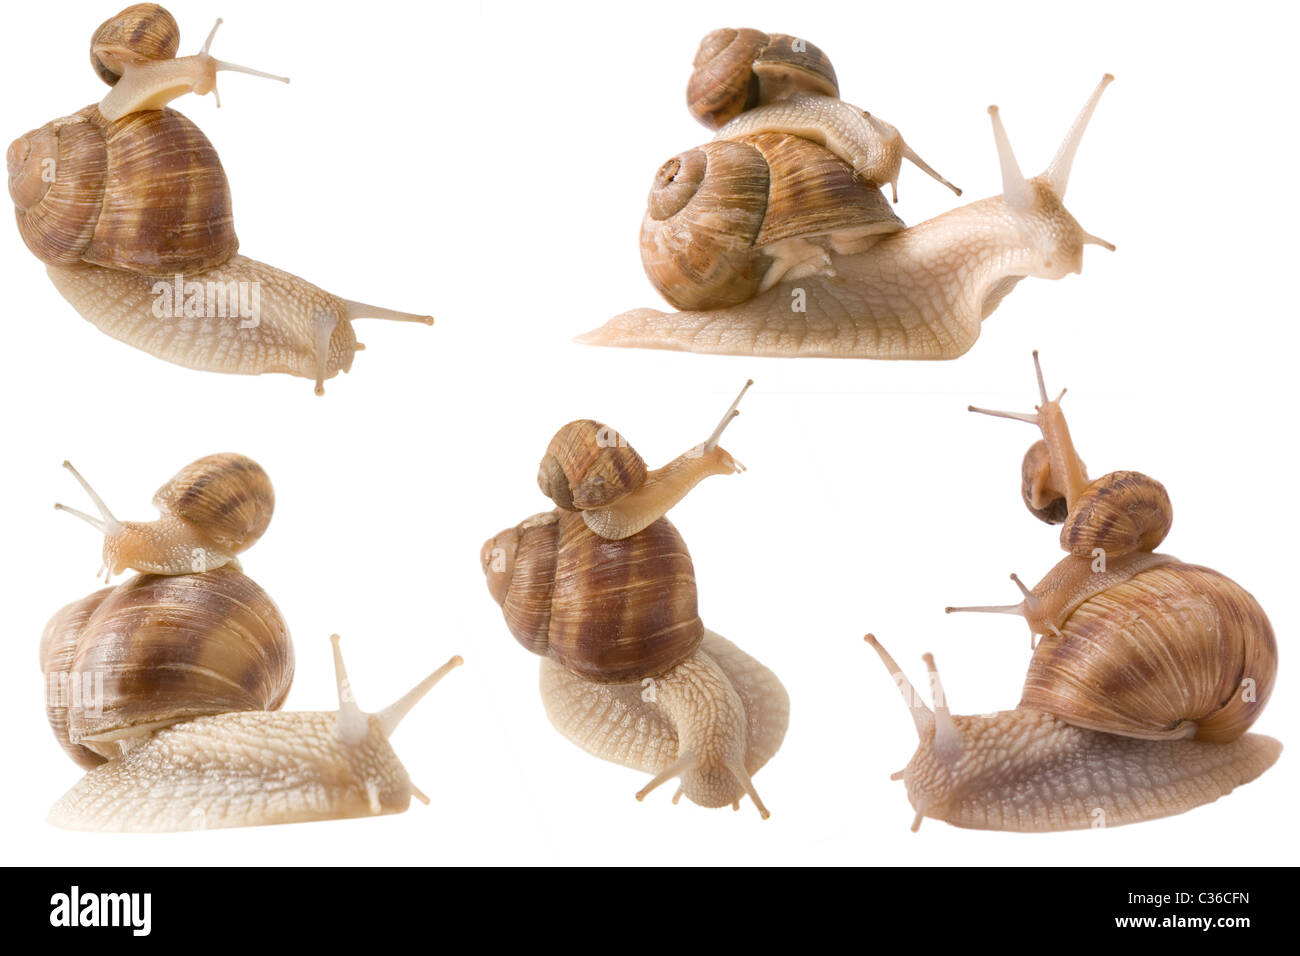 different point of view from piggy back snails - Stock Image